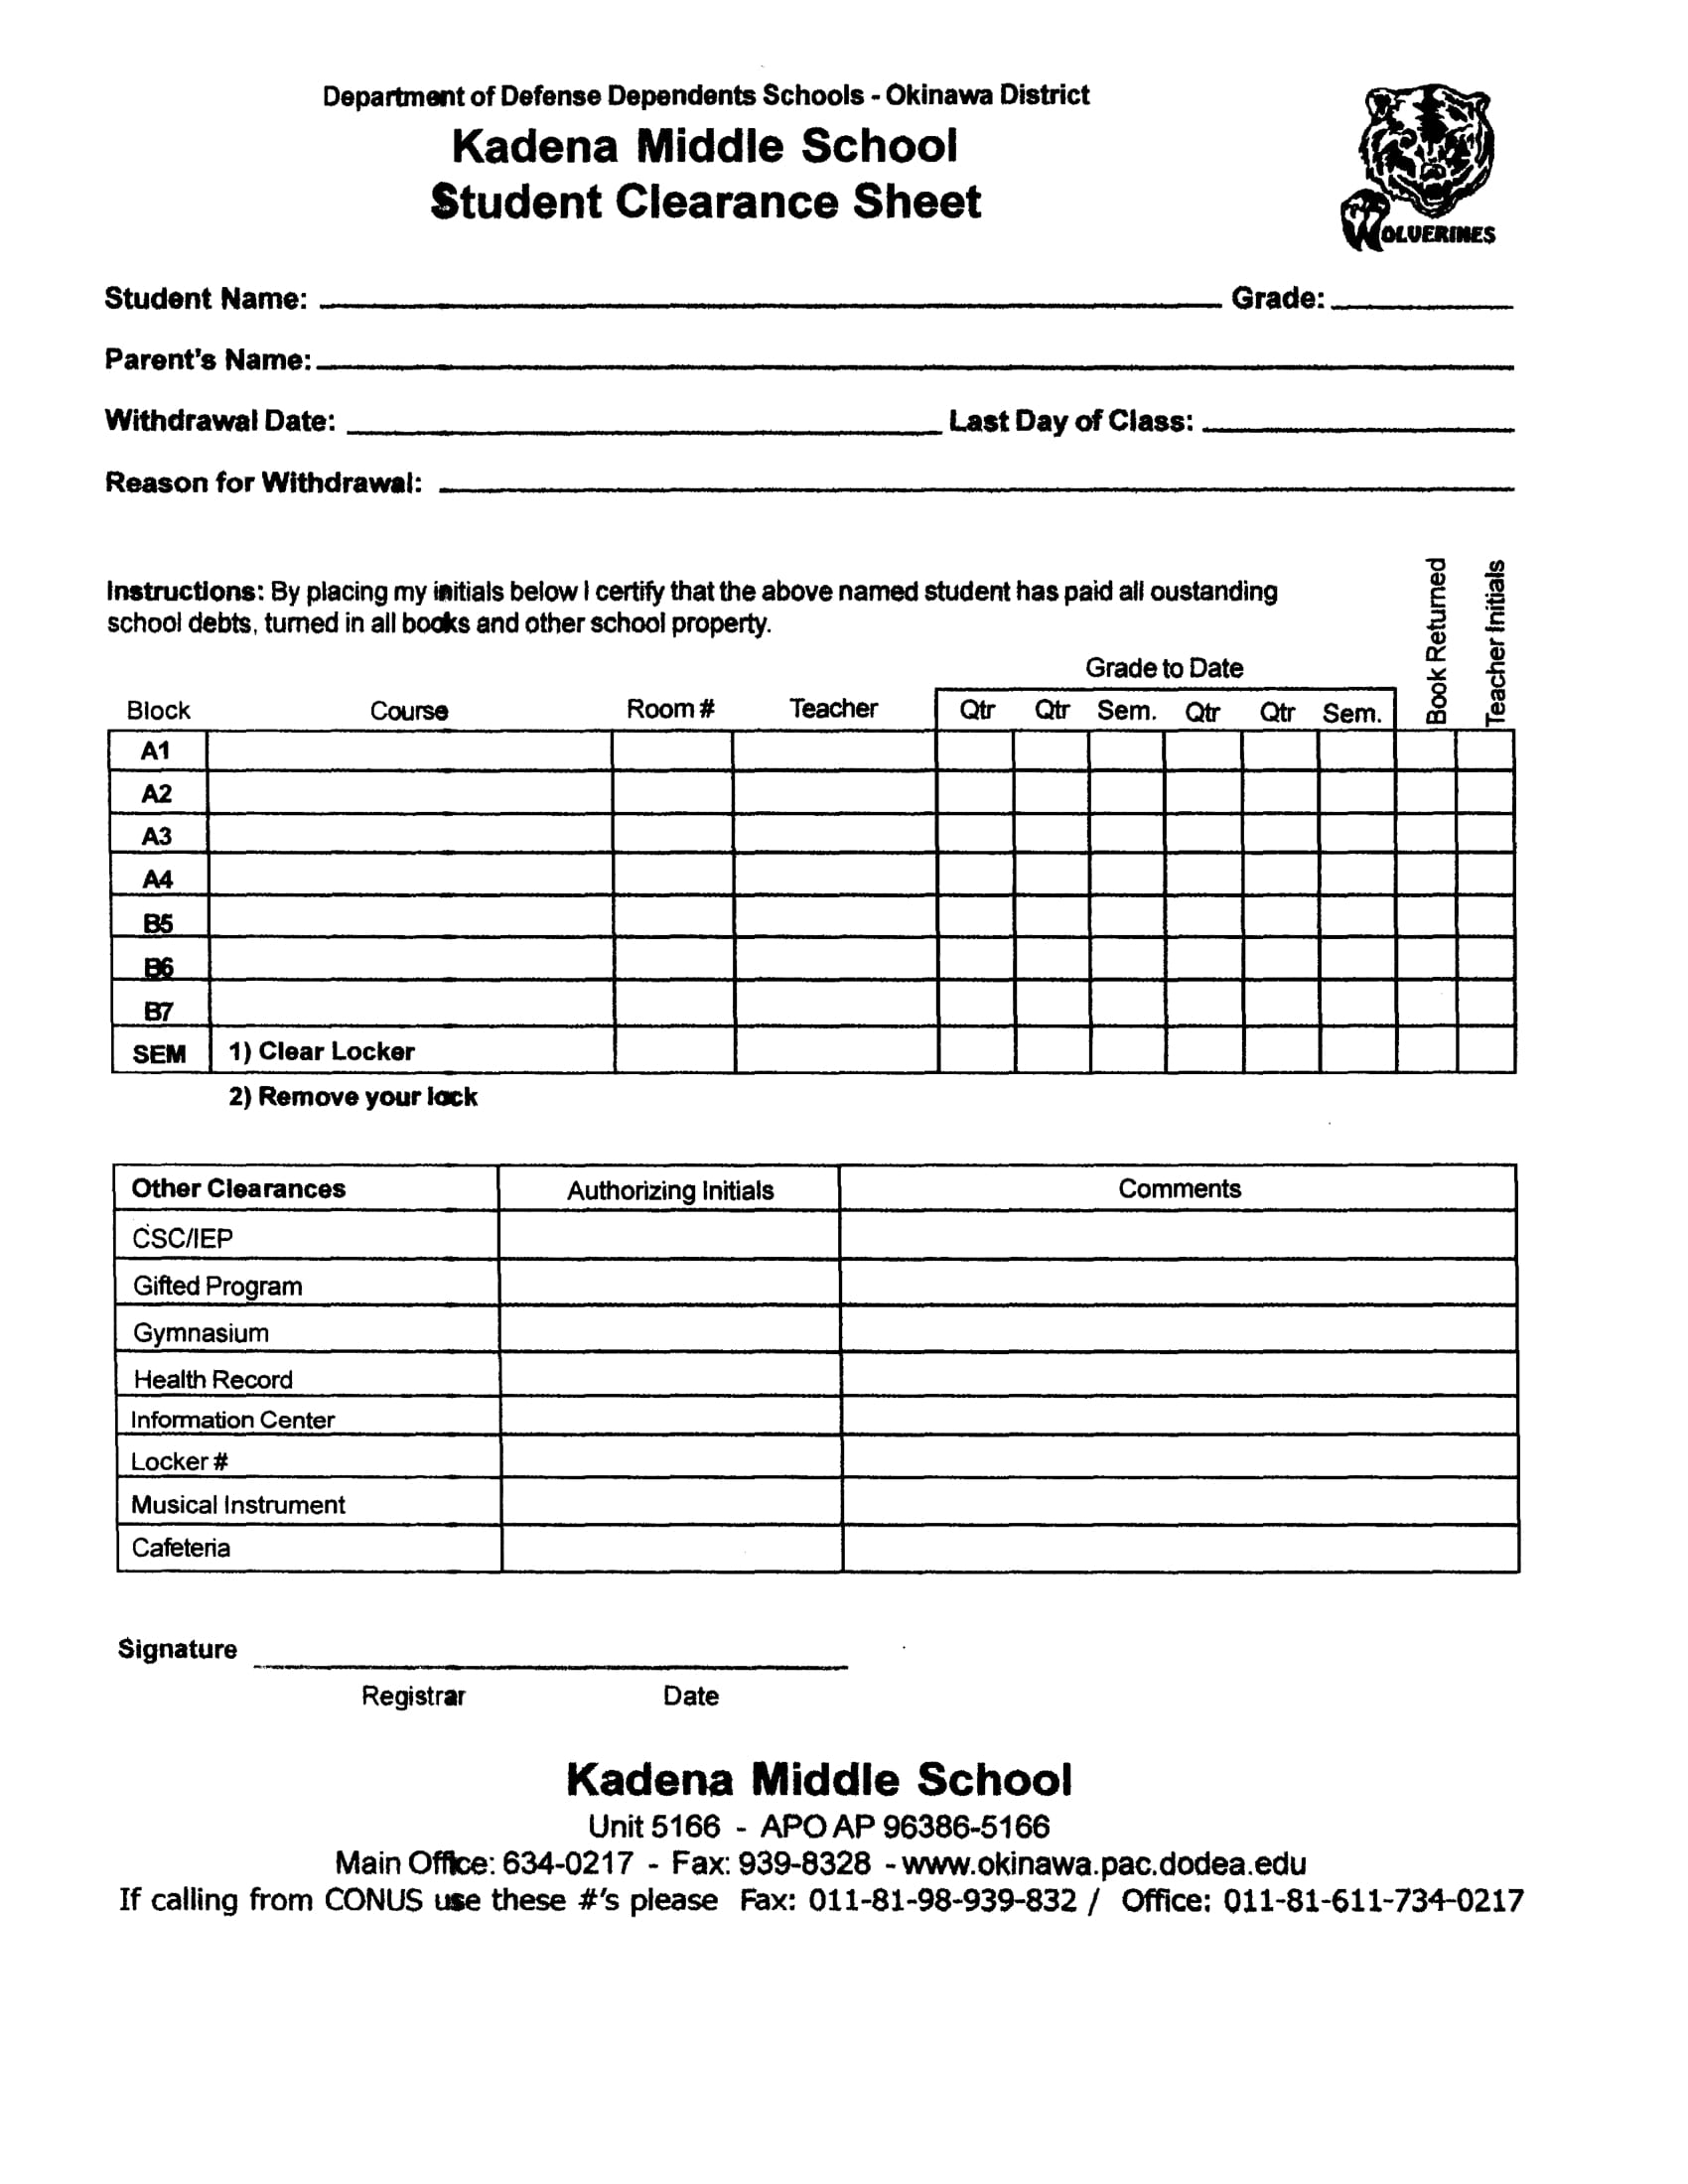 14 student clearance forms free word pdf format download middle school student clearance form yadclub Image collections